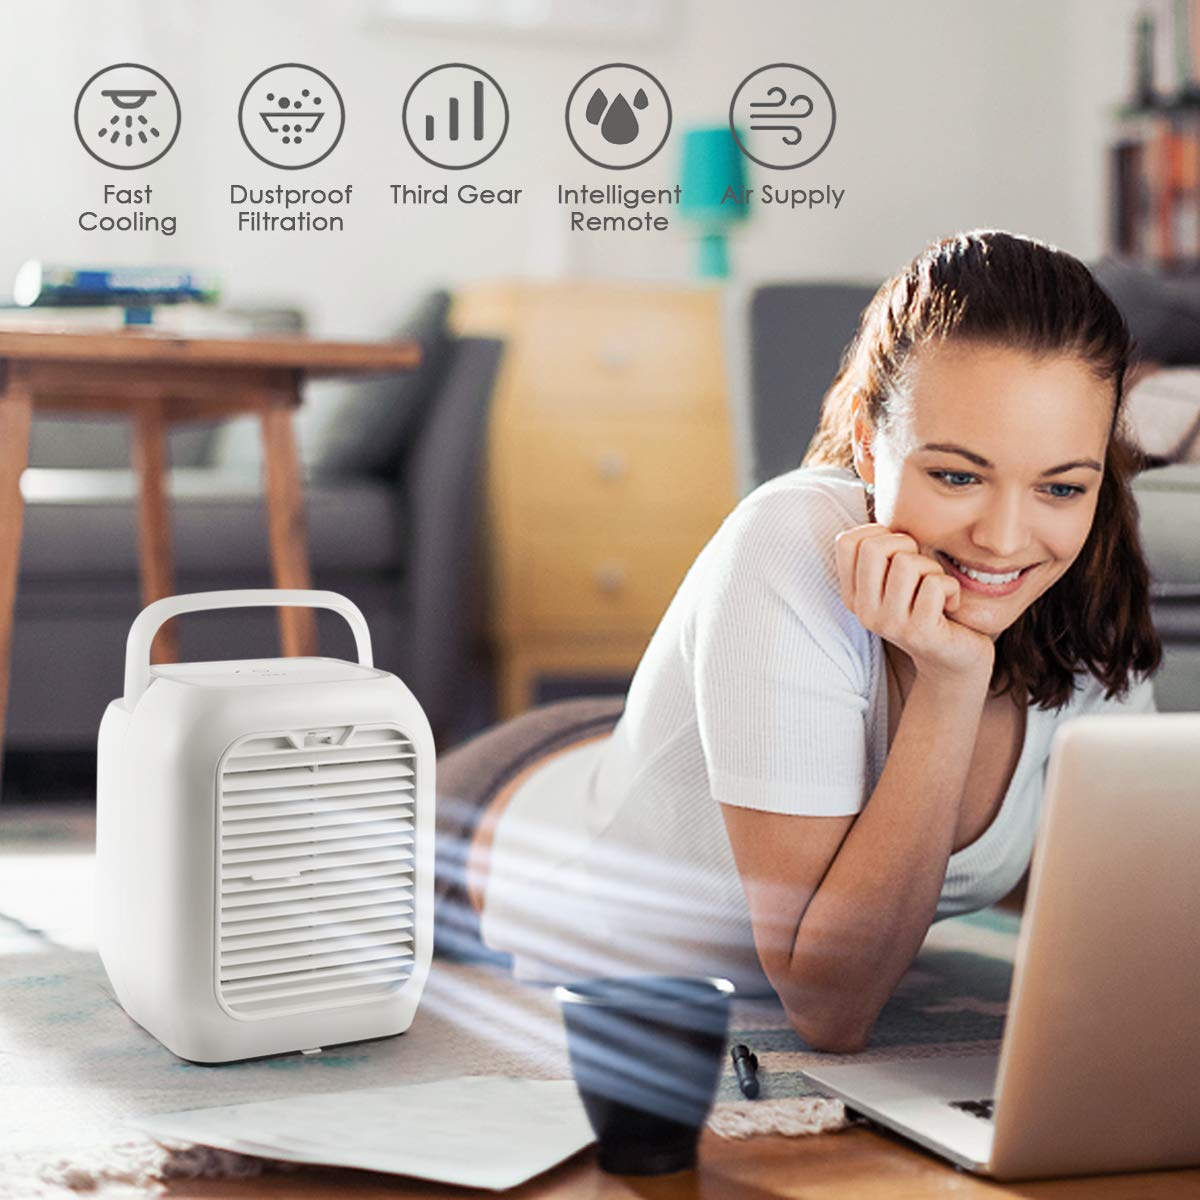 Air Personal Space Cooler Small Desktop Fan Quiet Personal Table Fan Mini Evaporative Air Circulator Cooler Humidifier Bladeless Quiet for Office Dorm Room Personal Air Conditioner Fan Outdoor